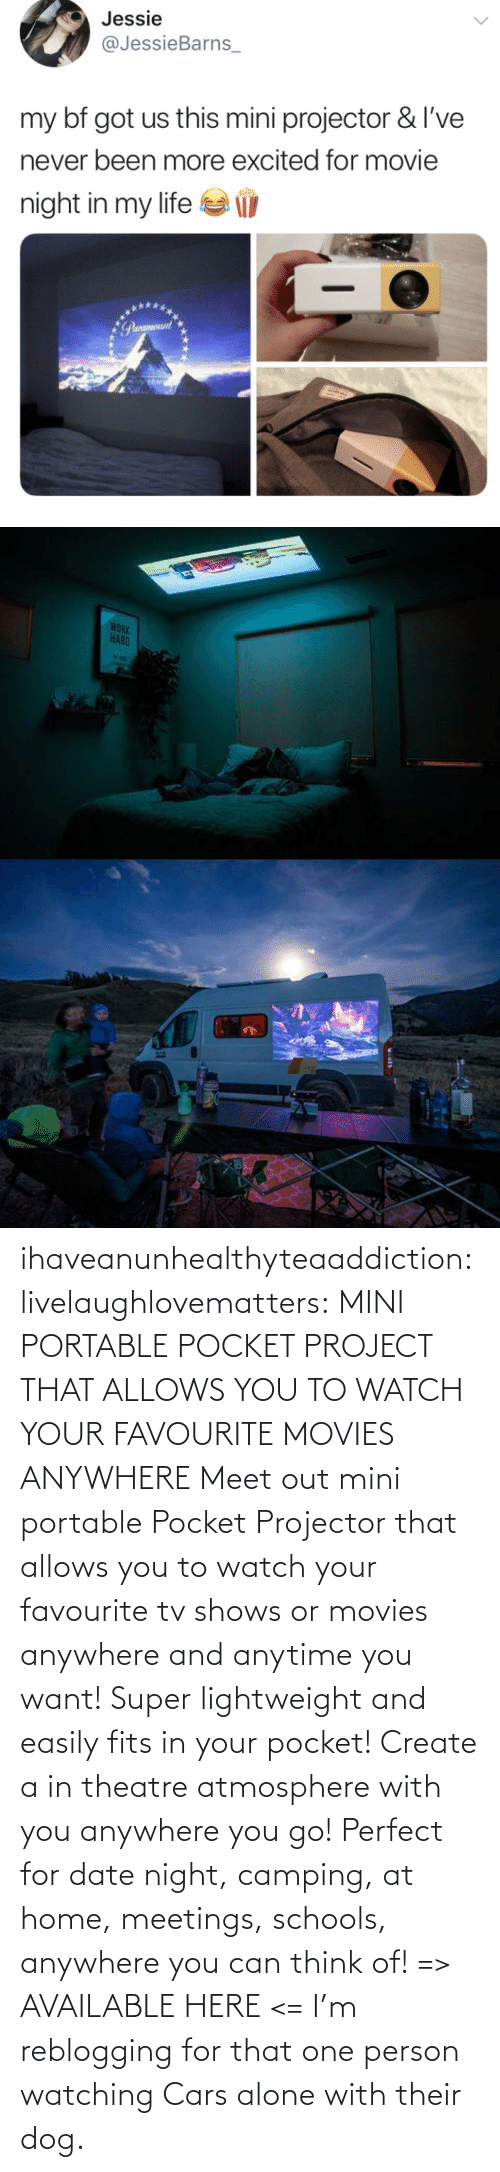 Theatre: ihaveanunhealthyteaaddiction: livelaughlovematters:  MINI PORTABLE POCKET PROJECT THAT ALLOWS YOU TO WATCH YOUR FAVOURITE MOVIES ANYWHERE Meet out mini portable Pocket Projector that allows you to watch your favourite tv shows or movies anywhere and anytime you want! Super lightweight and easily fits in your pocket! Create a in theatre atmosphere with you anywhere you go! Perfect for date night, camping, at home, meetings, schools, anywhere you can think of! => AVAILABLE HERE <=    I'm reblogging for that one person watching Cars alone with their dog.